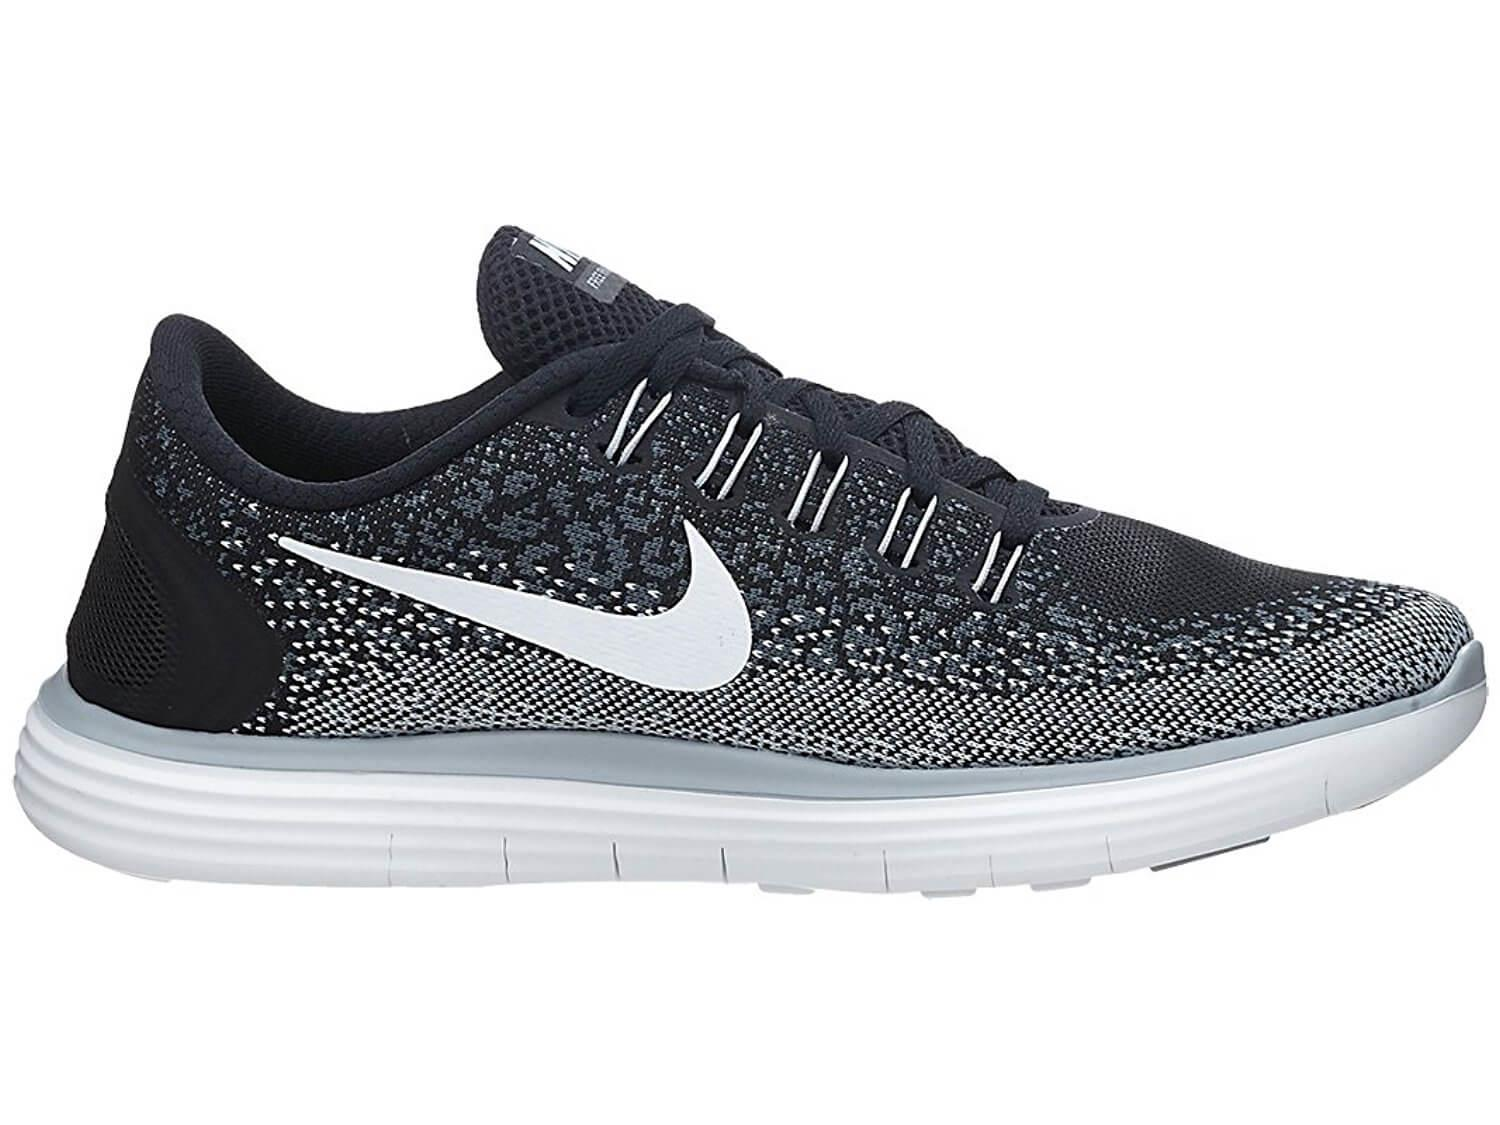 3e760defa82f ... Responsiveness and cushioning go hand-in-hand with the Nike Free RN  Distance s midsole ...